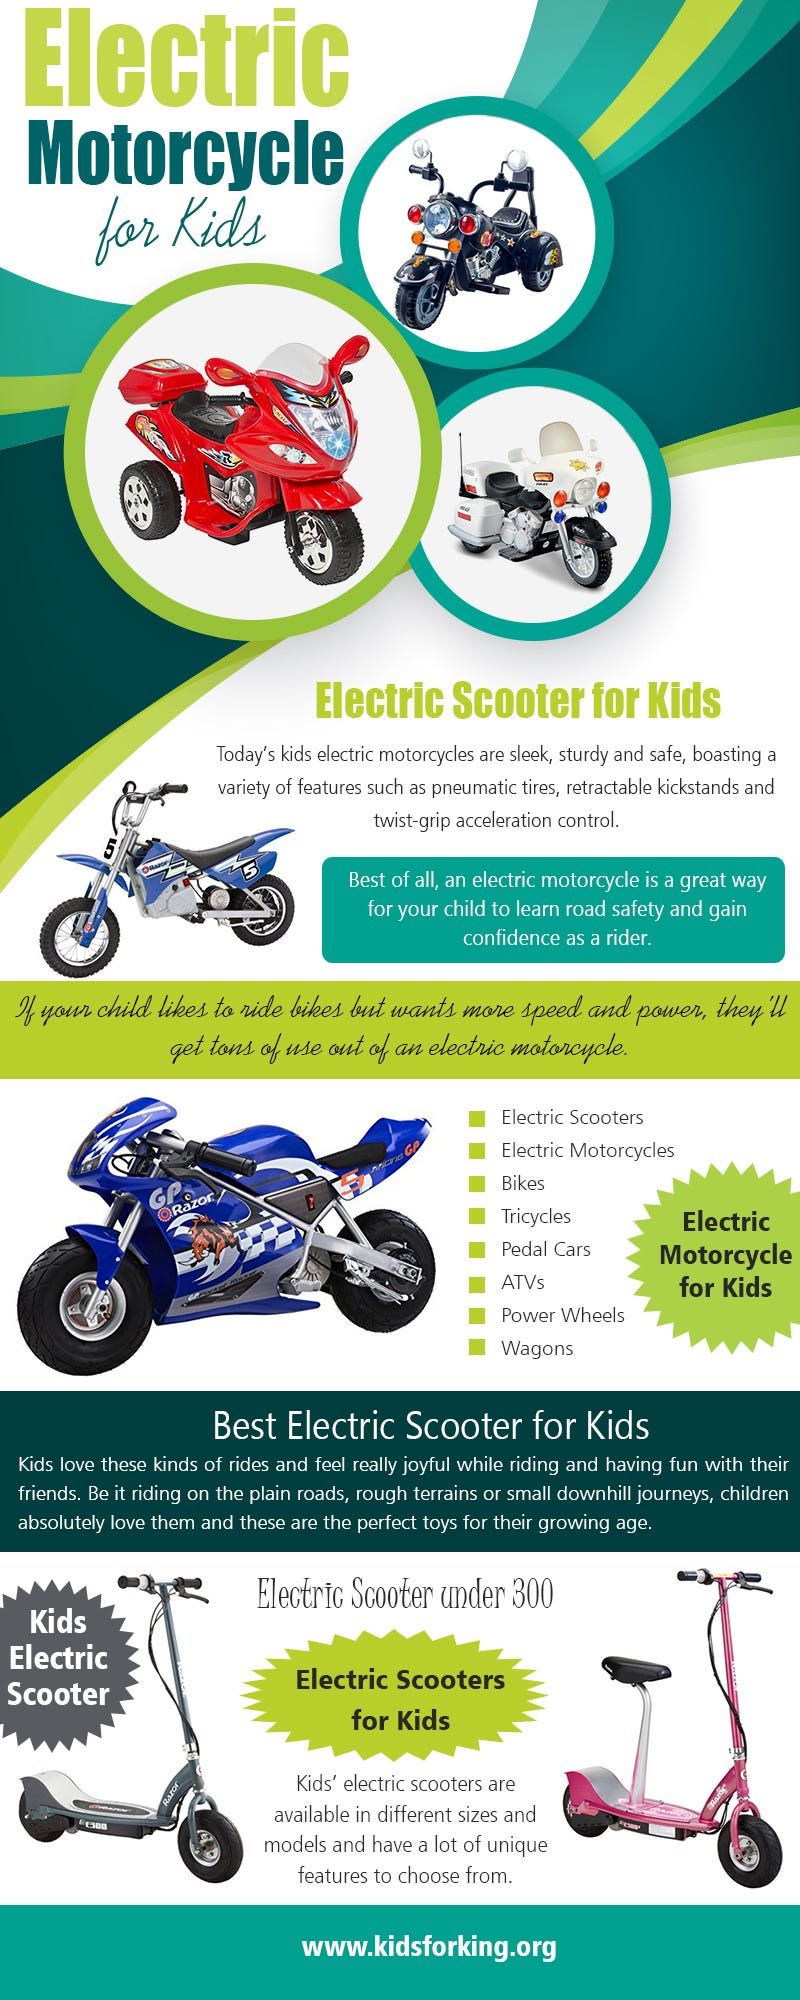 Illustration for article titled Electric Motorcycle for Kids | kidsforking.org